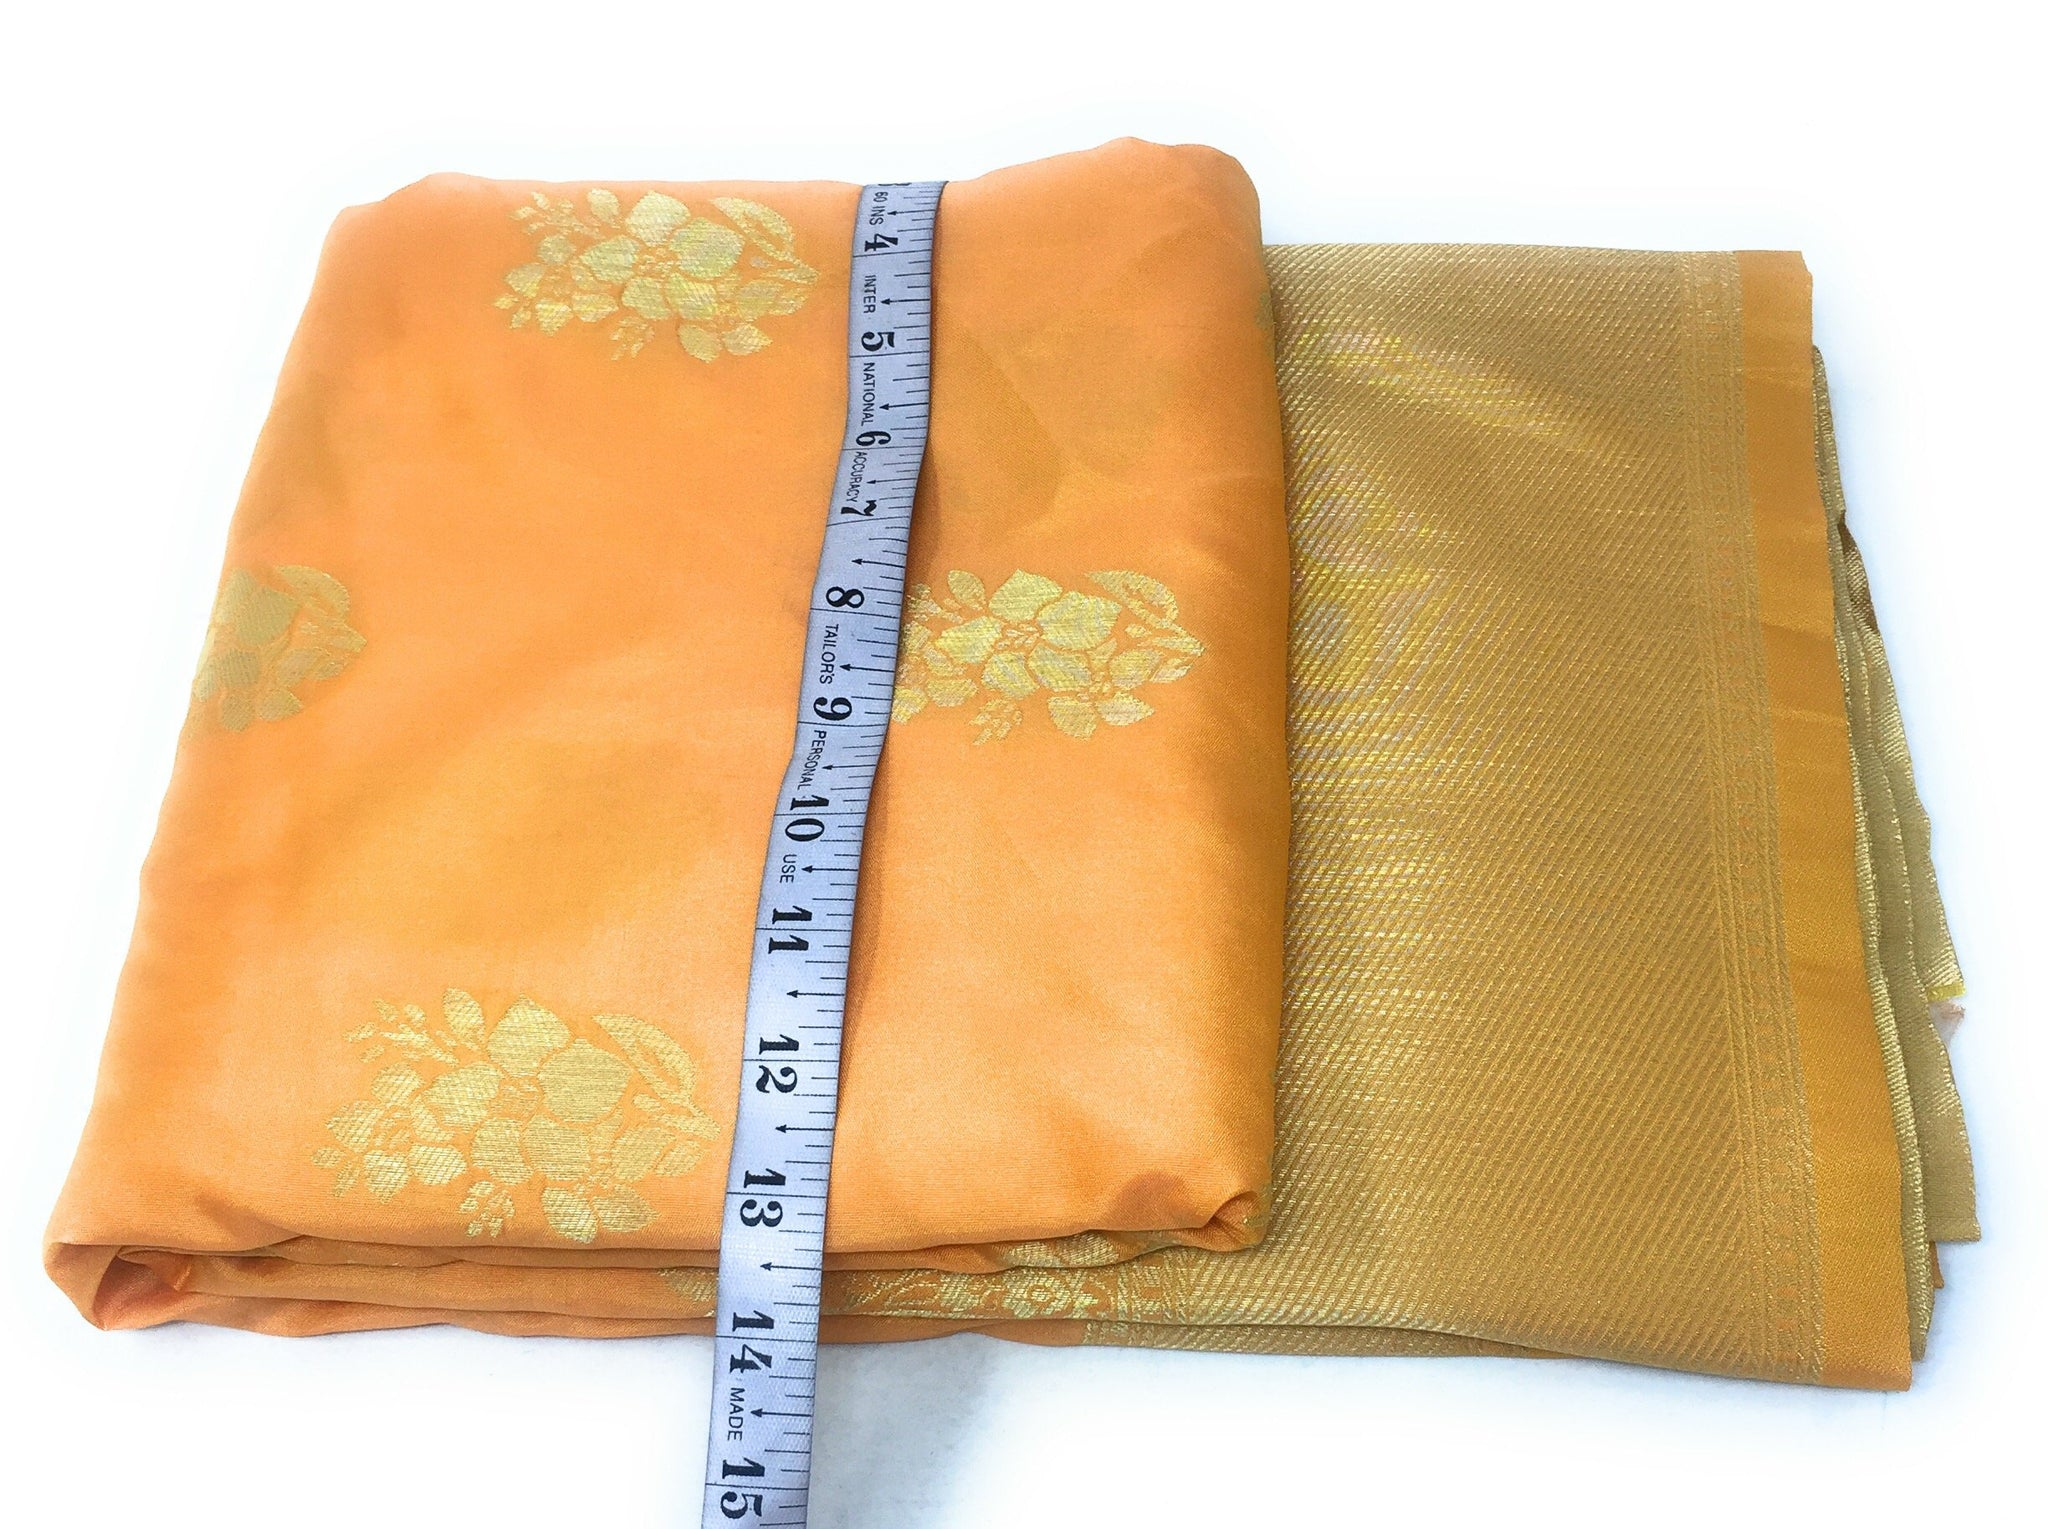 Brocade Material In Mango Orange N Gold Indian Fabric Online - 1.5 Meter